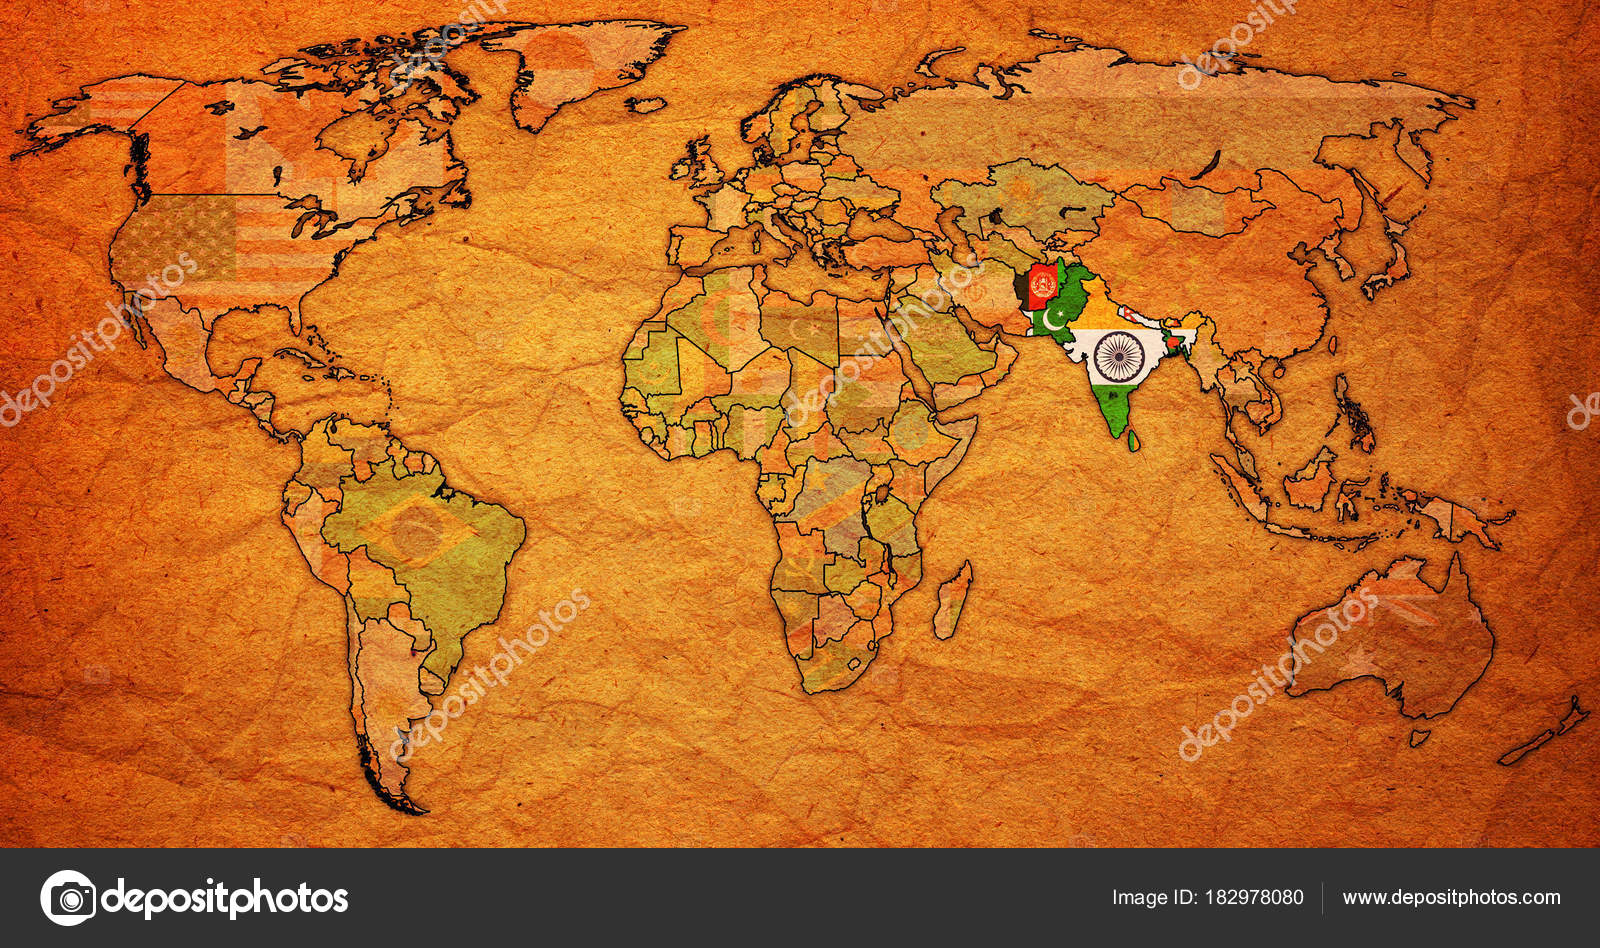 South Asian Free Trade Area Territory On World Map Stock Photo